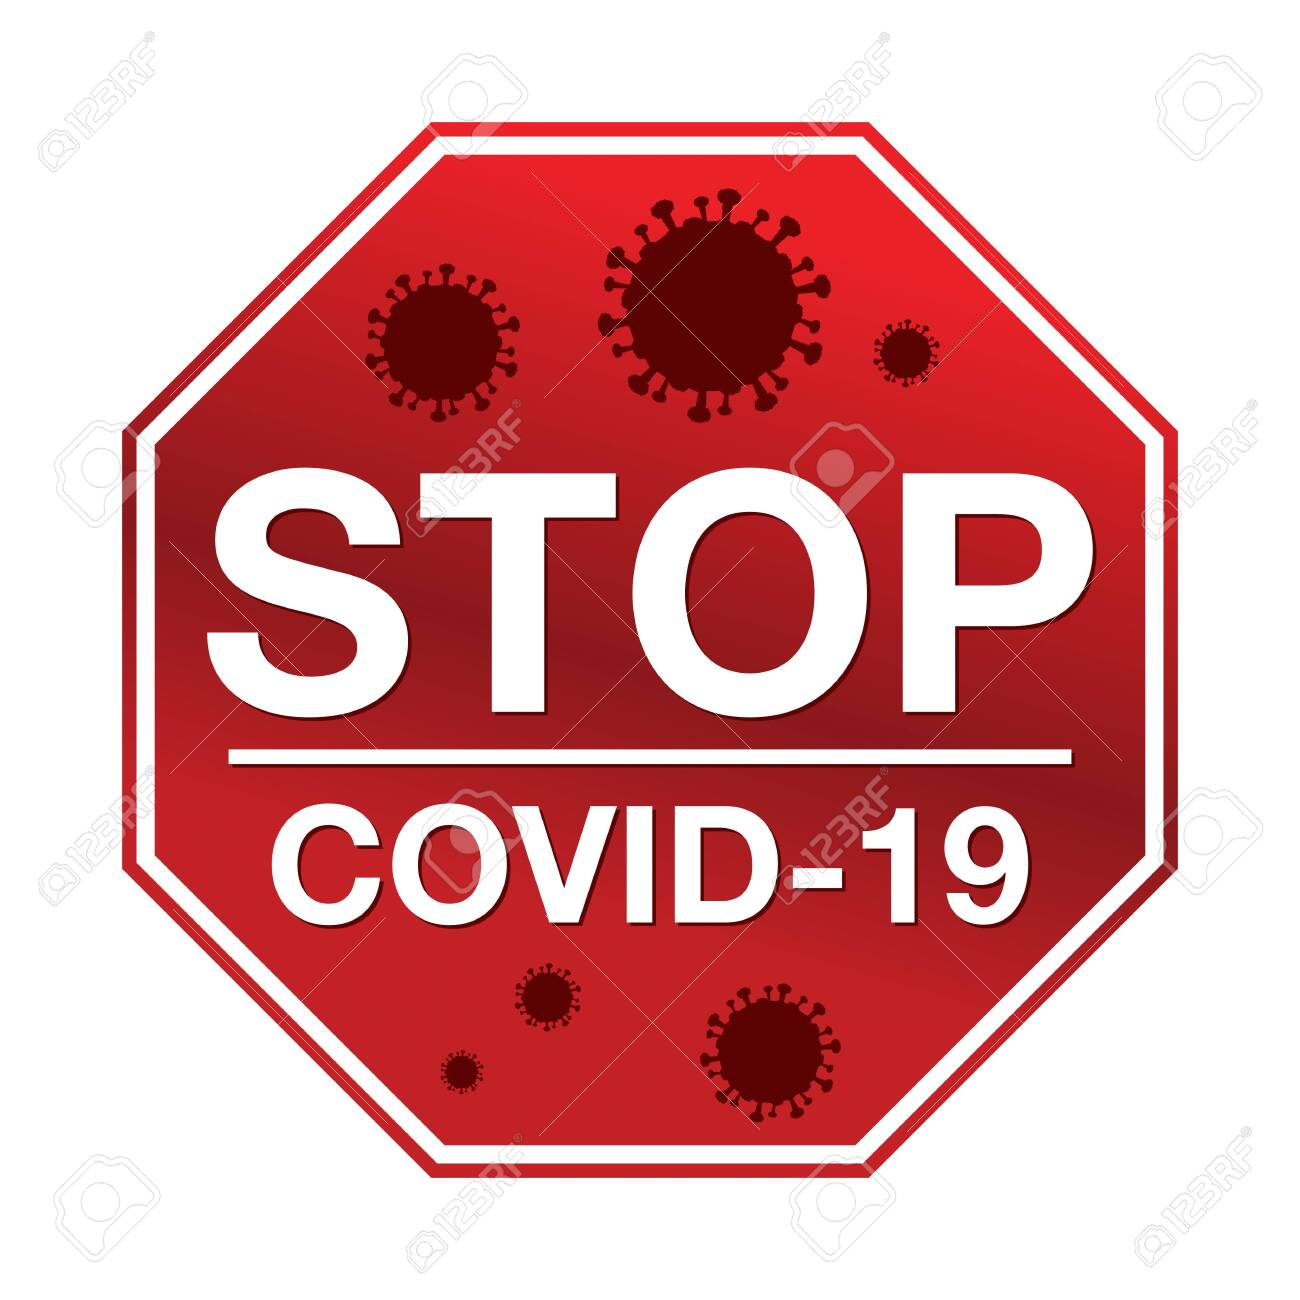 A stop sign with the message stop COVID-19 illustration. - 142540978